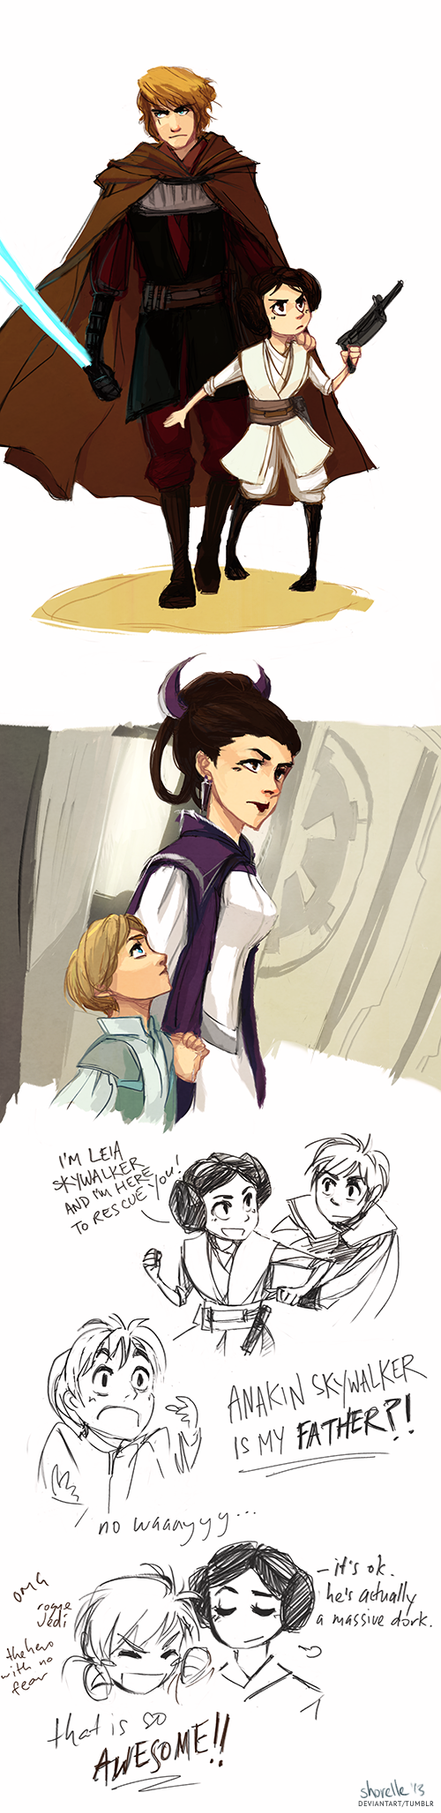 Star Wars Fanfiction Luke And Leia Time Travel